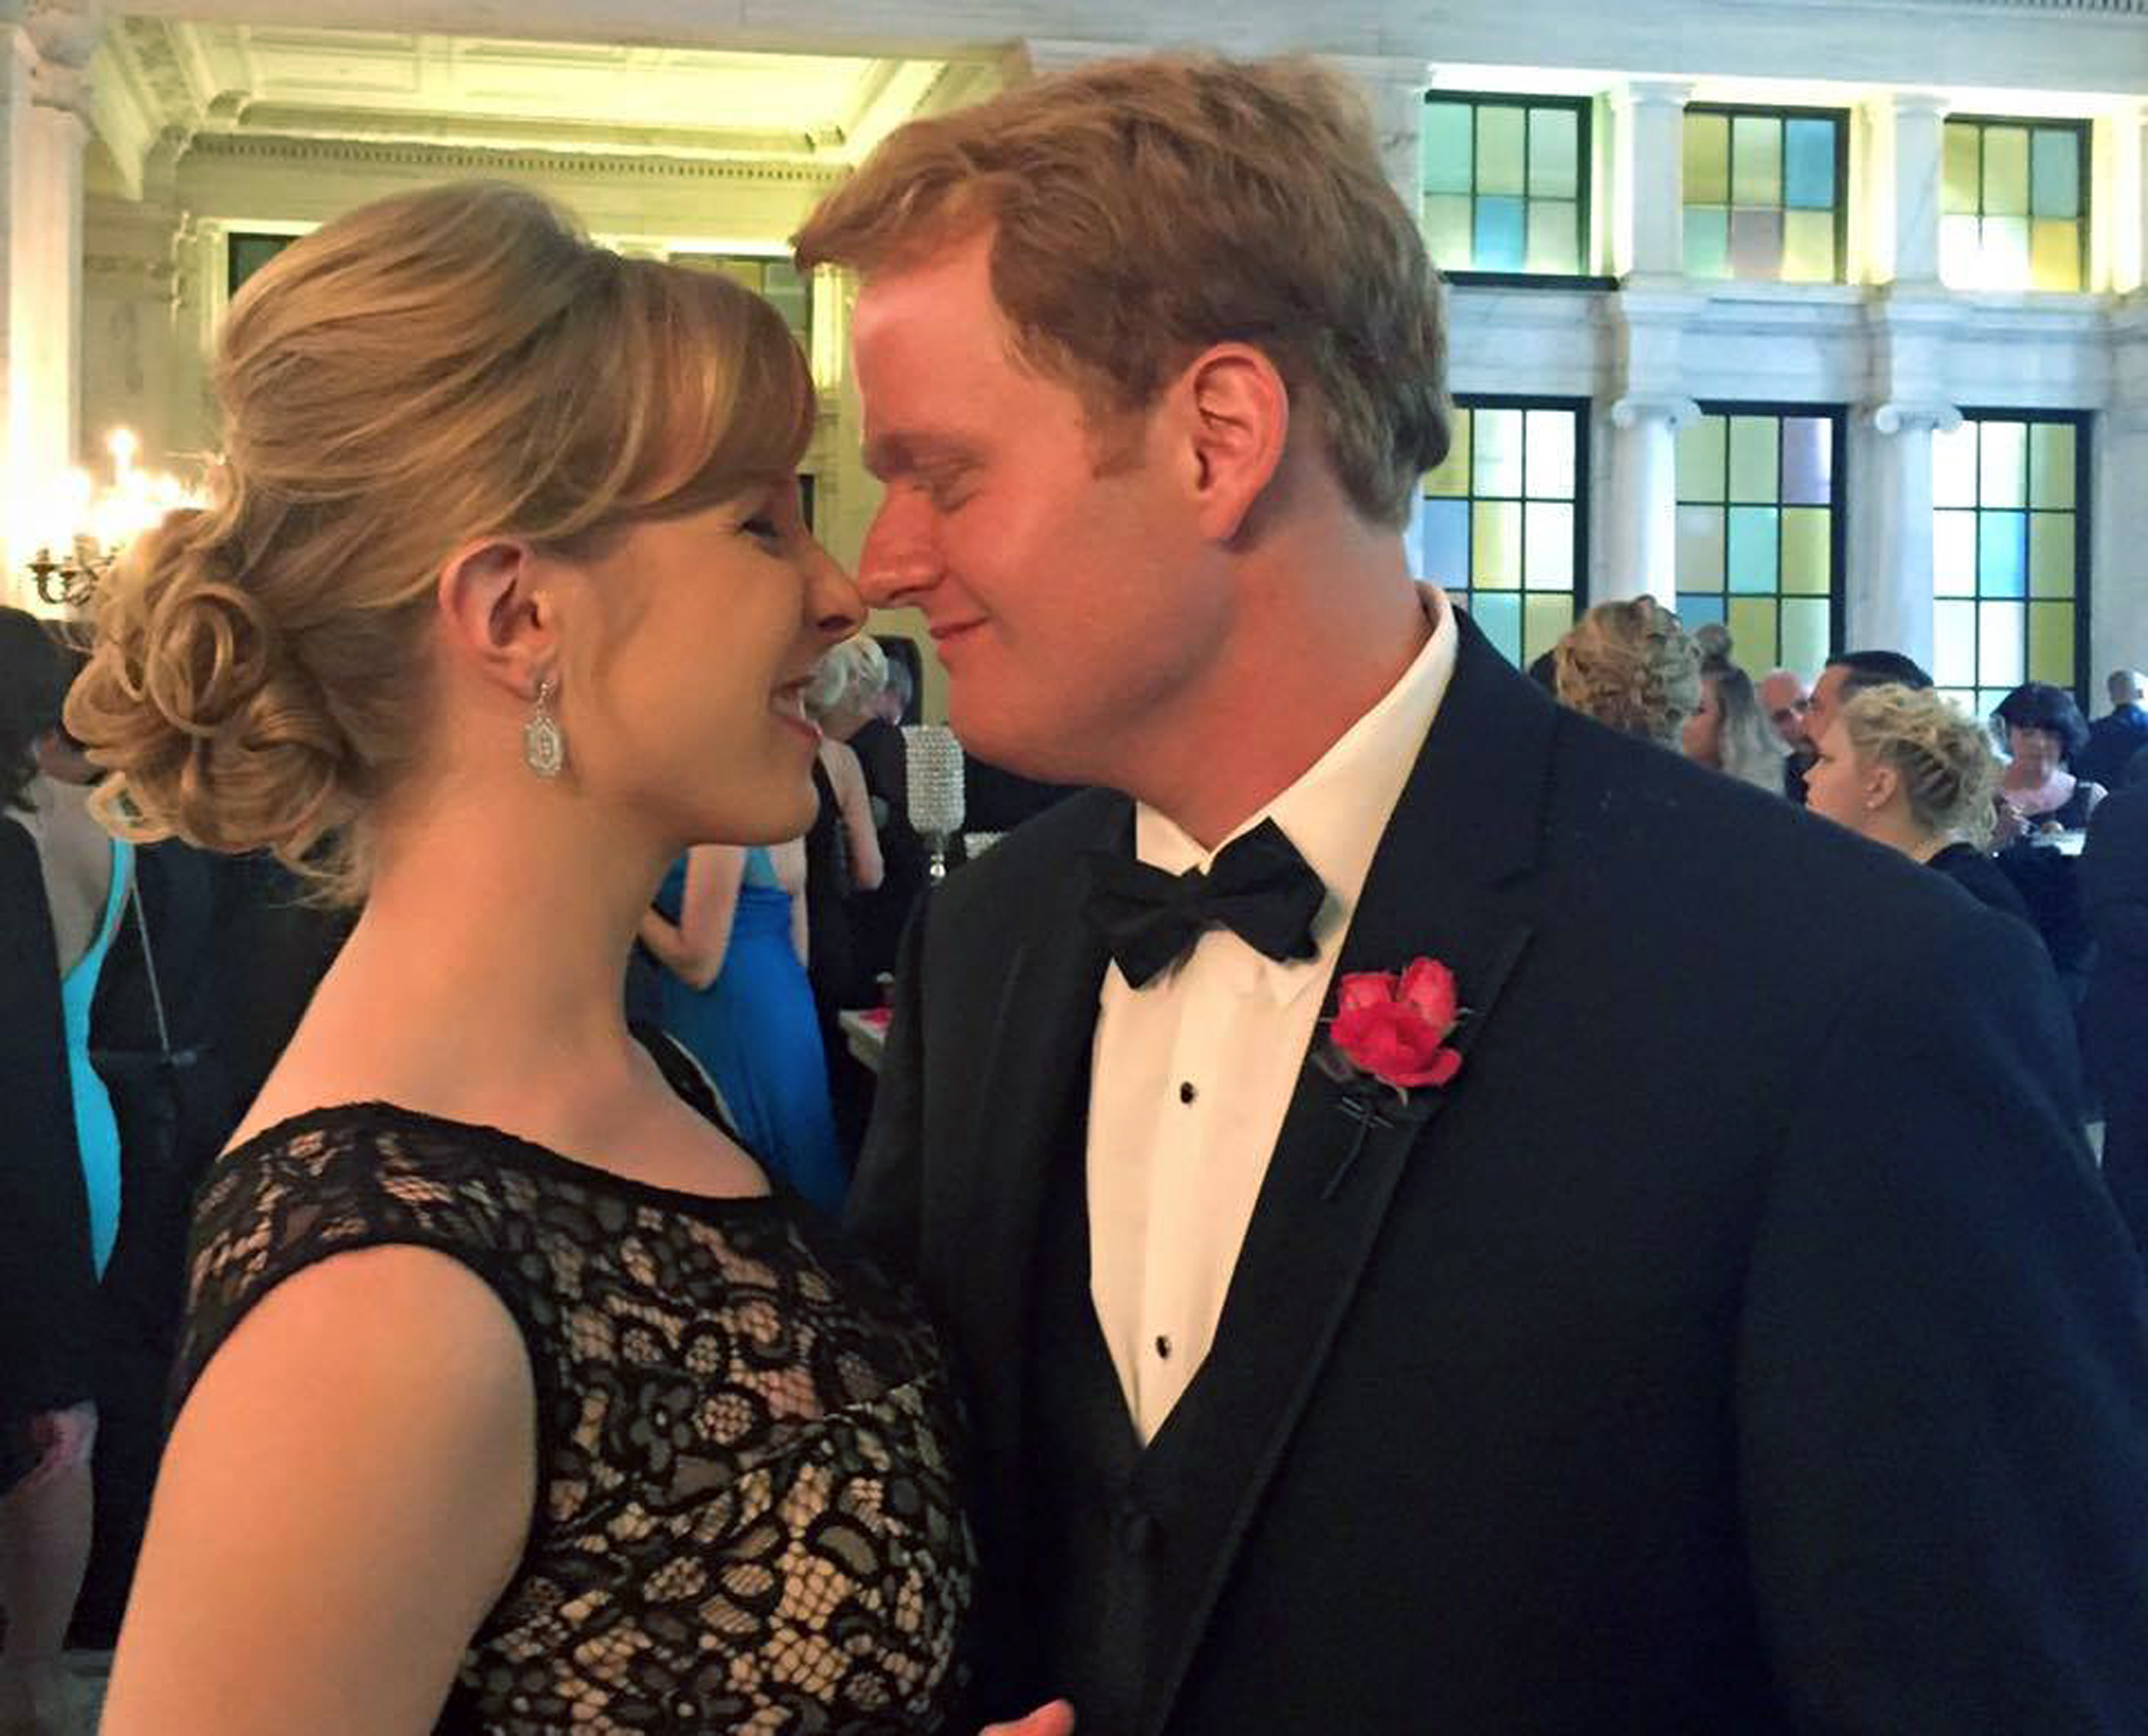 Allison Parker Model alison parker's boyfriend chris hurst describes 'magical' 9